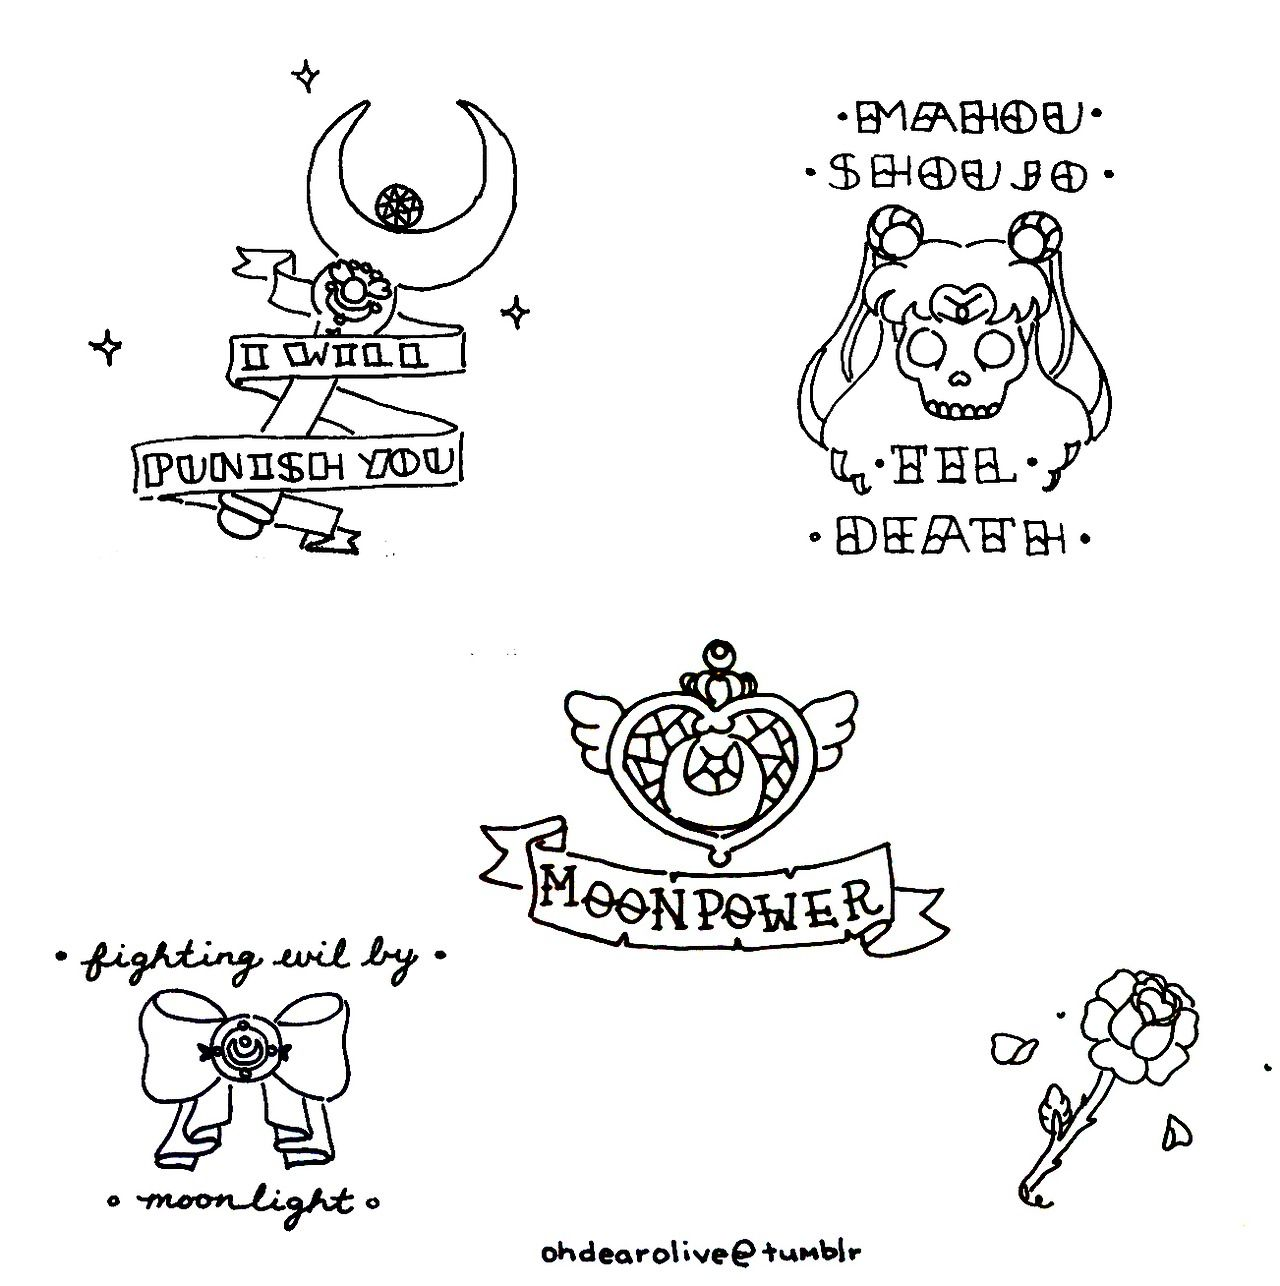 i drew some sailor moon themed traditional tattoos as a